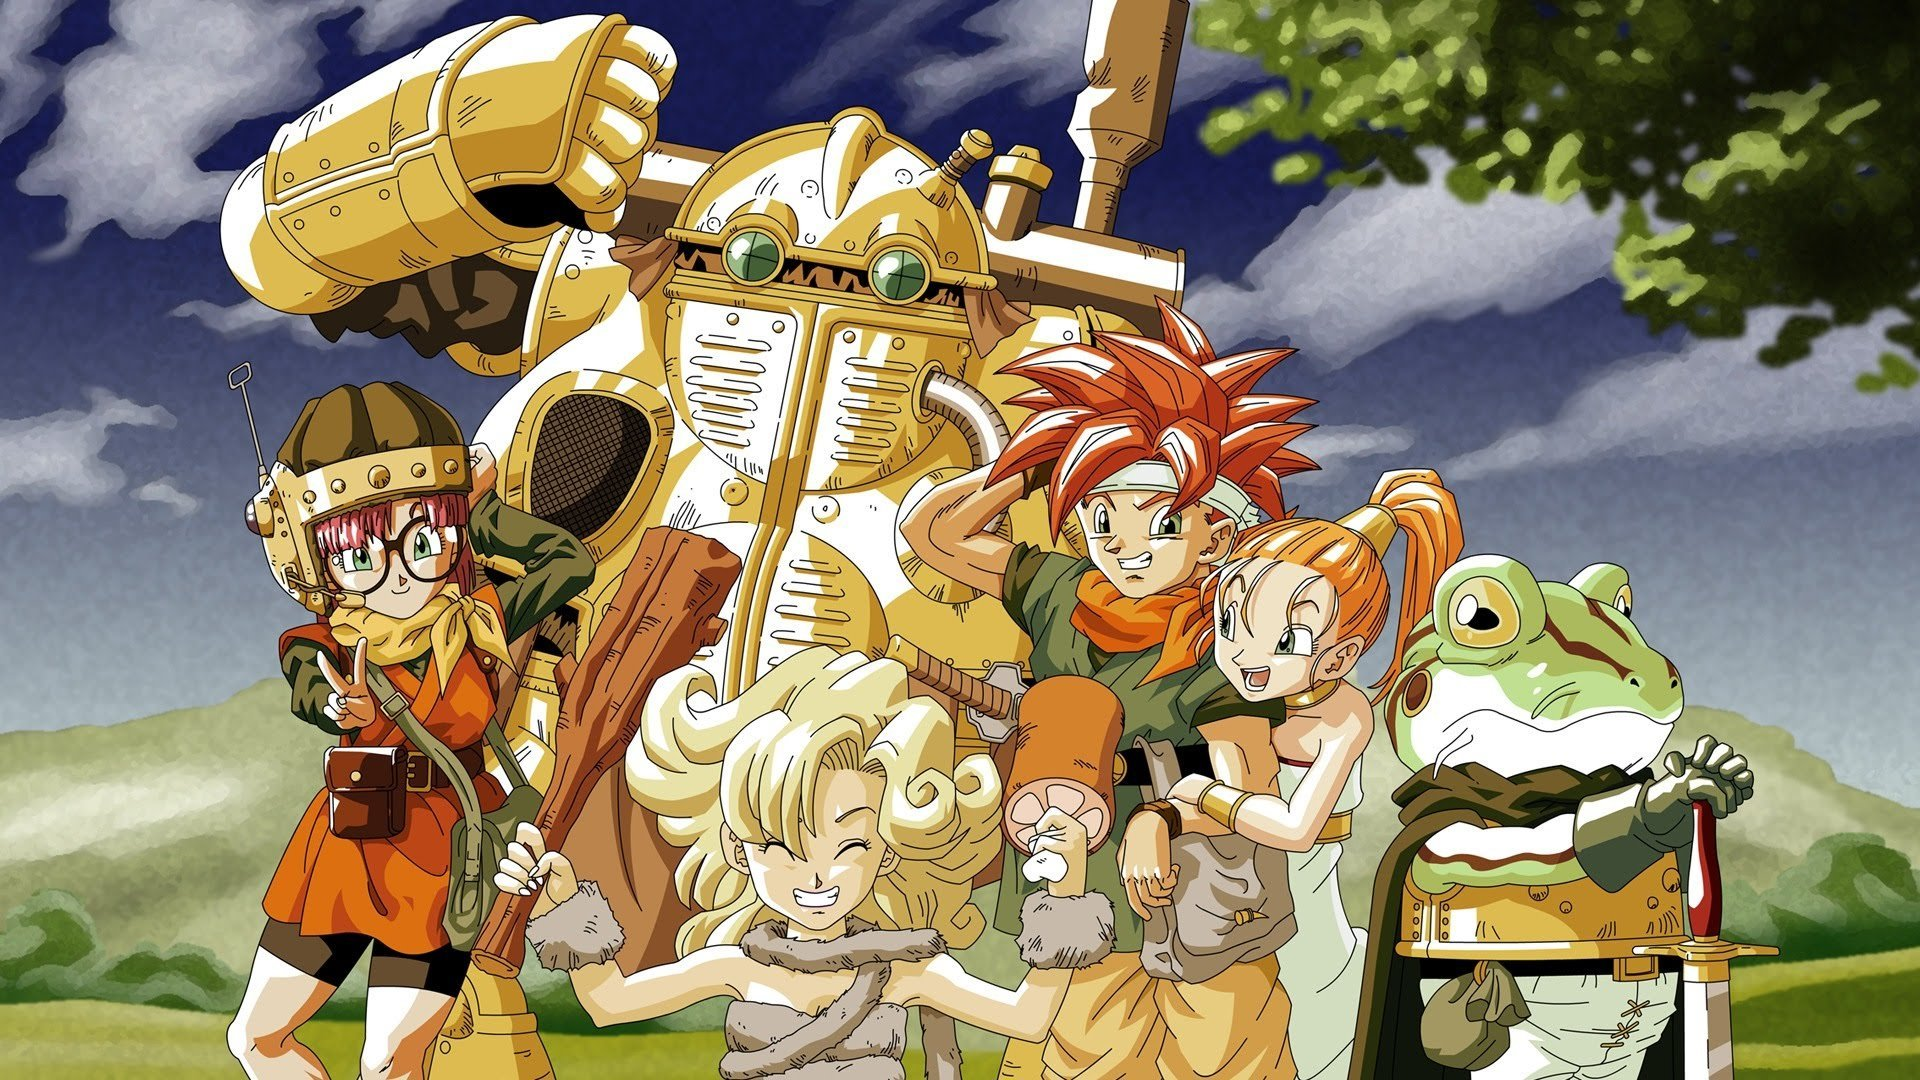 Chrono Trigger On Steam Getting Graphics Update To Address Complaints